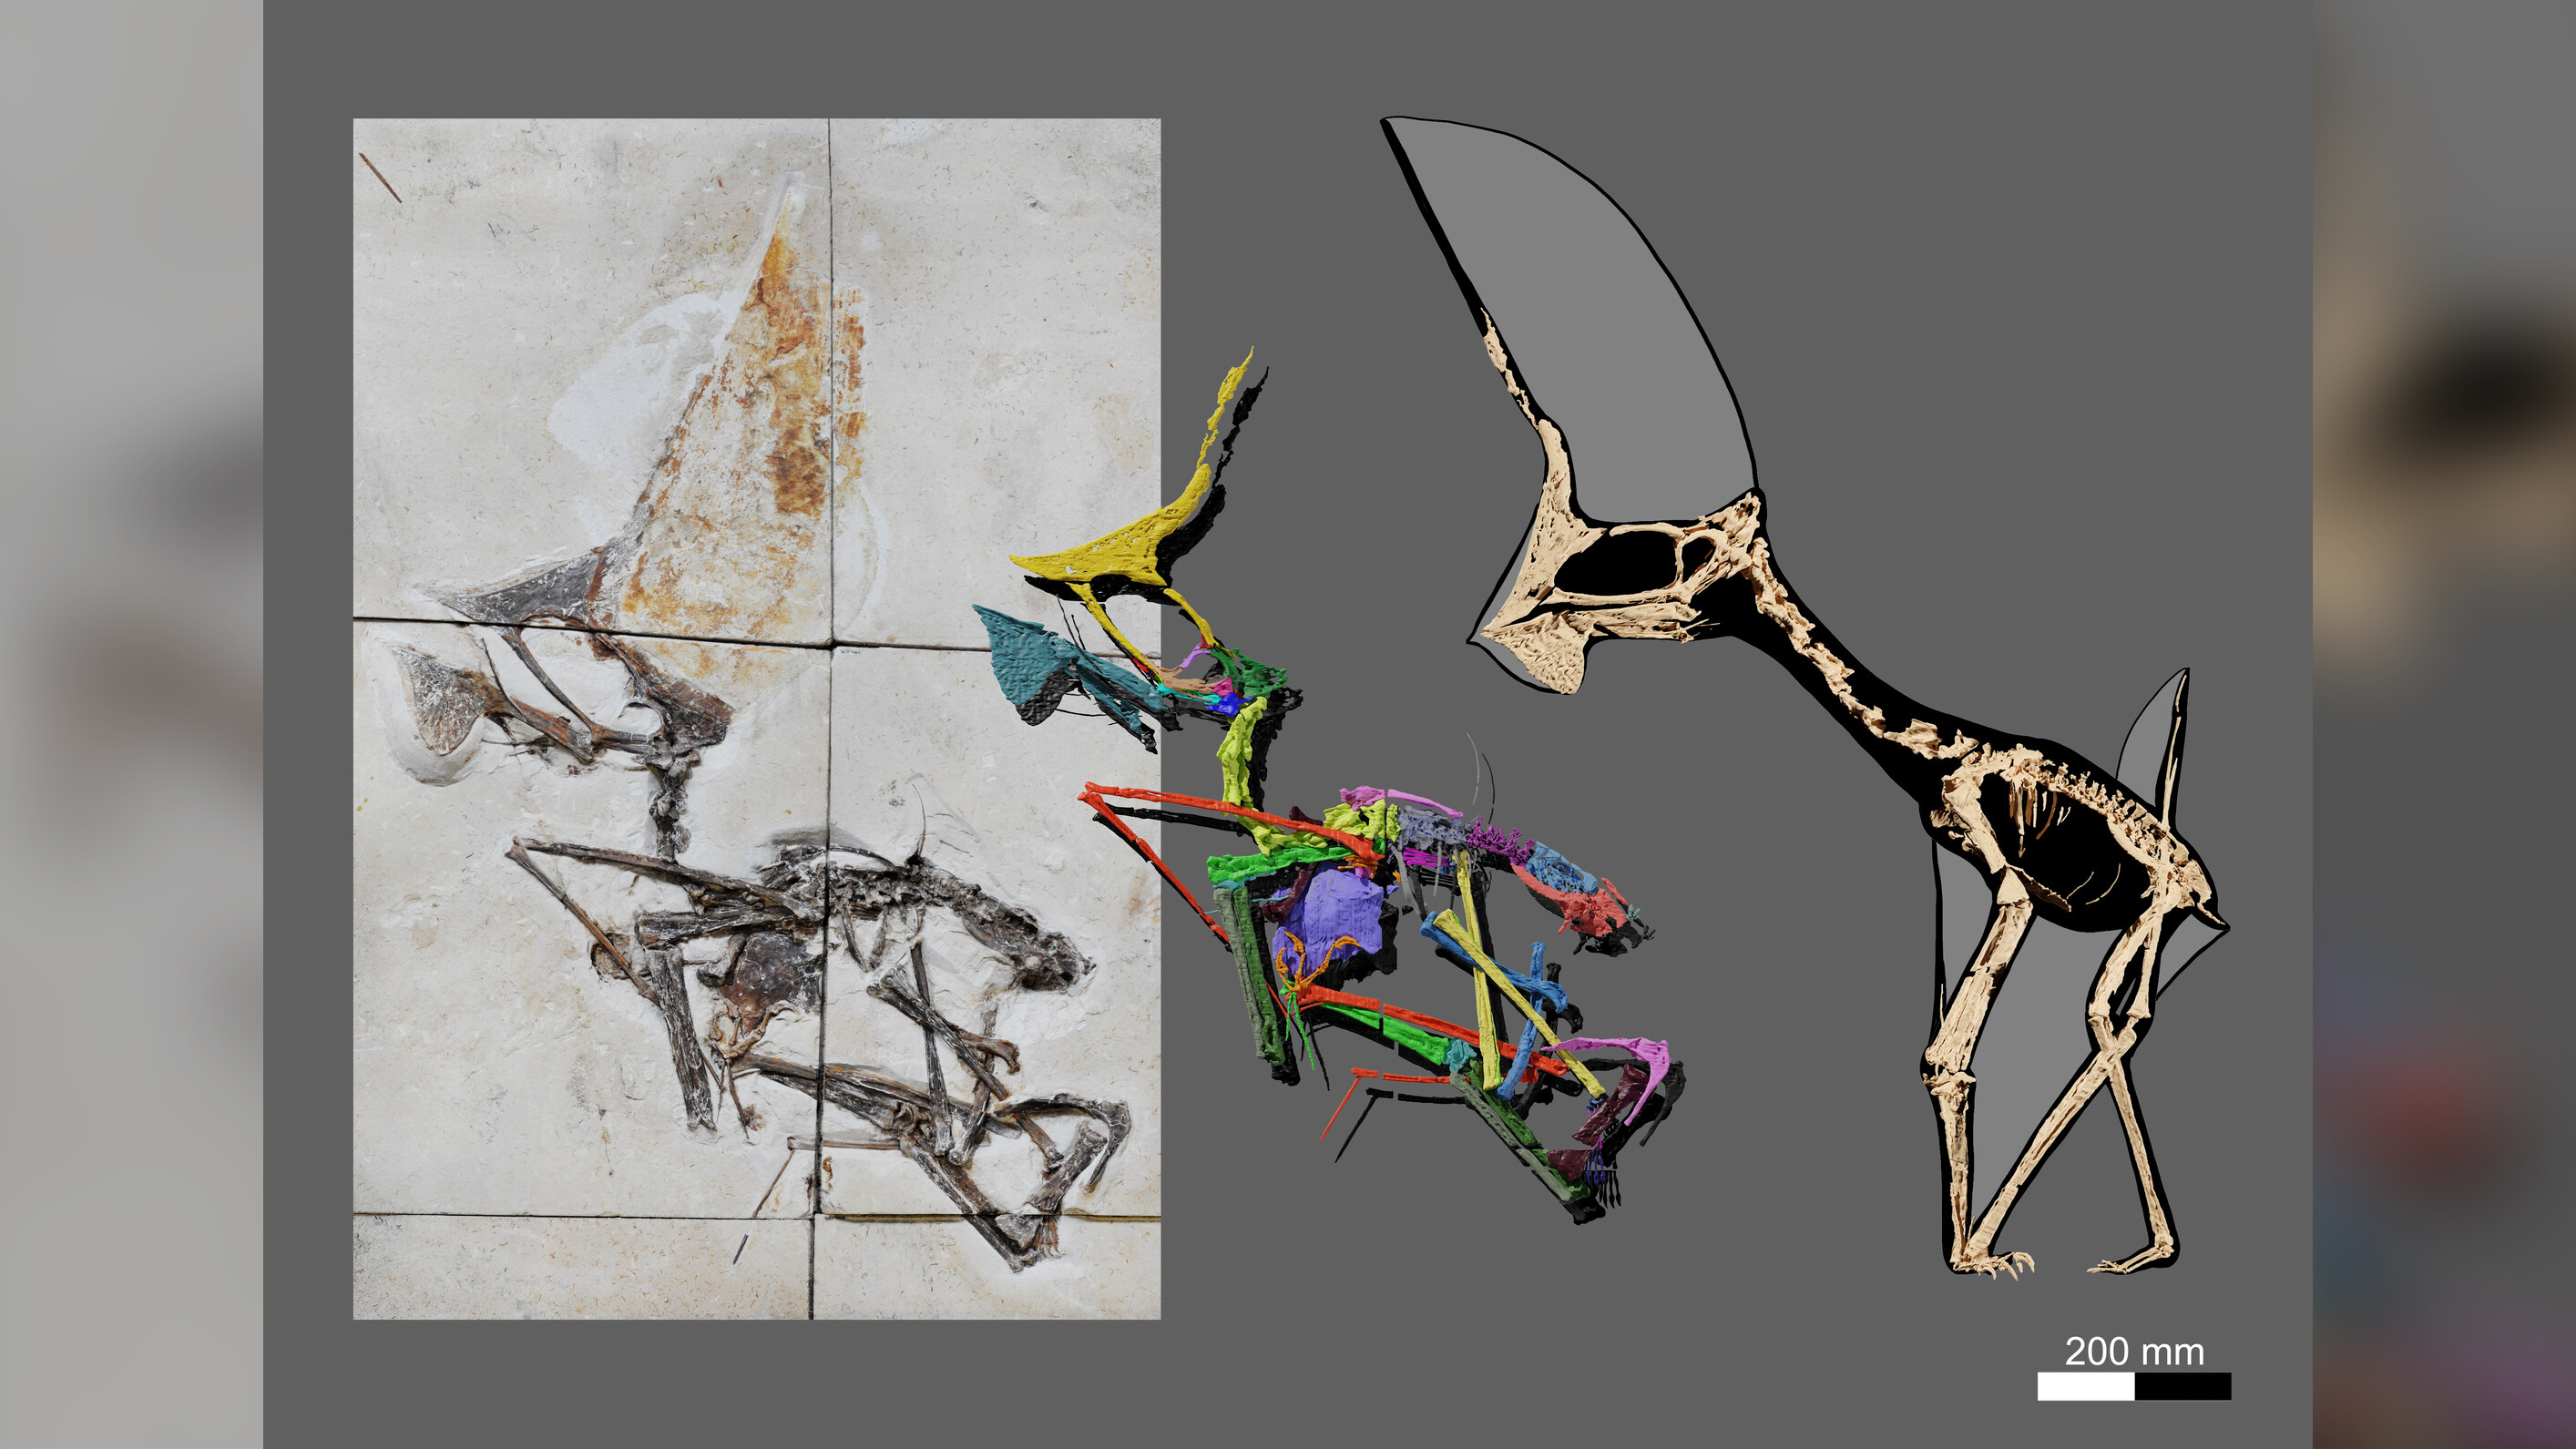 Fossil confiscated in police raid is one of the most complete pterosaur skeletons ever found